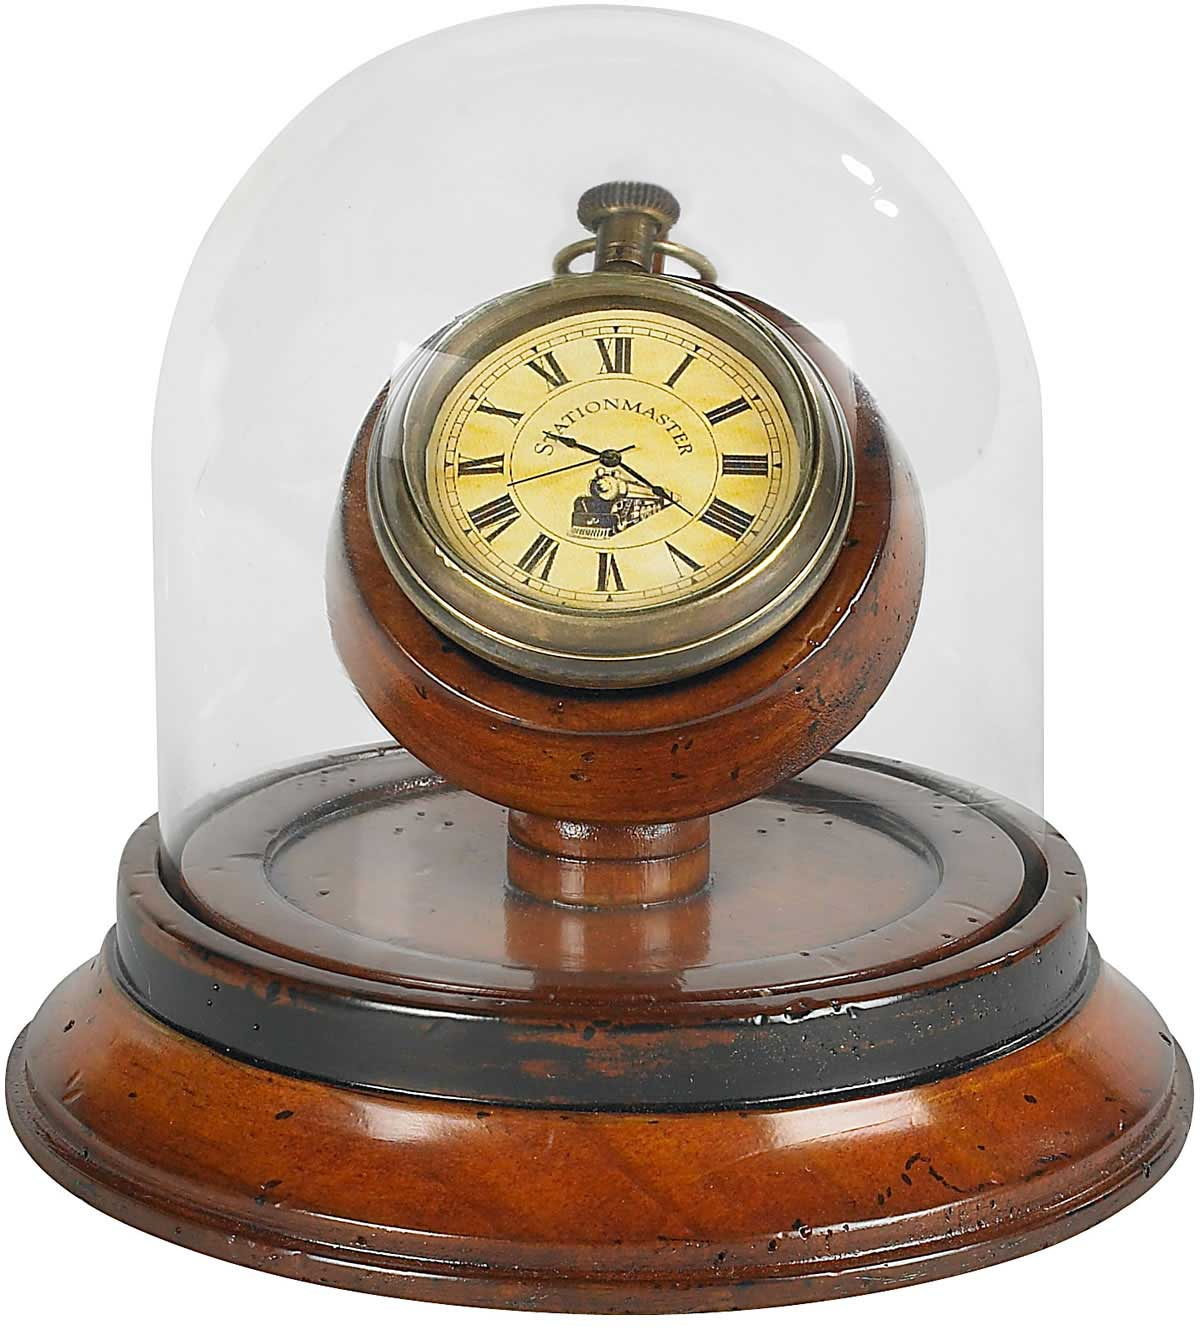 Pocket watch dome